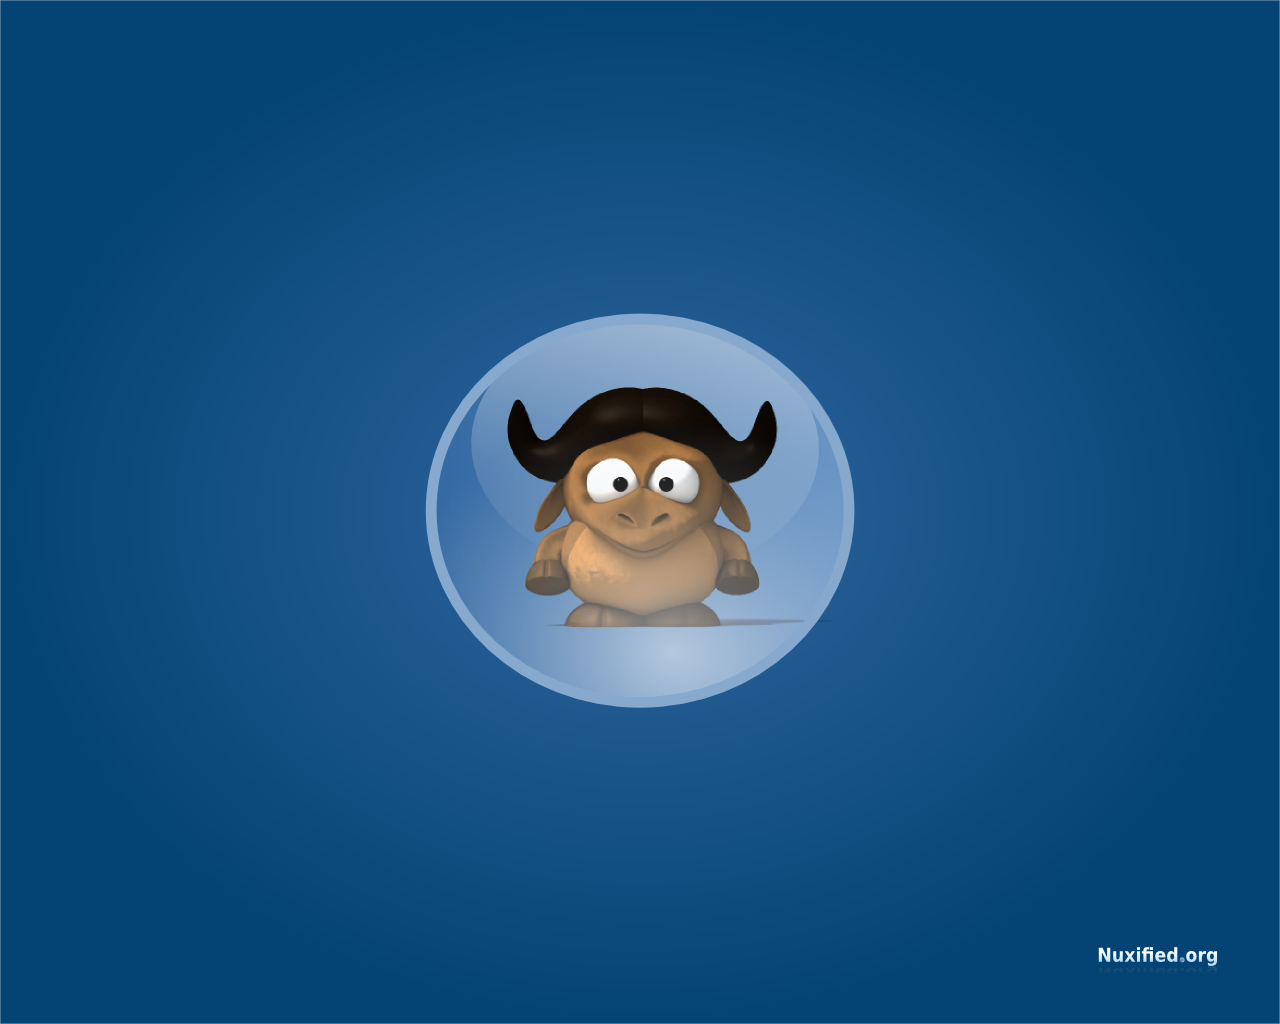 Nuxified Desktop GNU Wallpaper